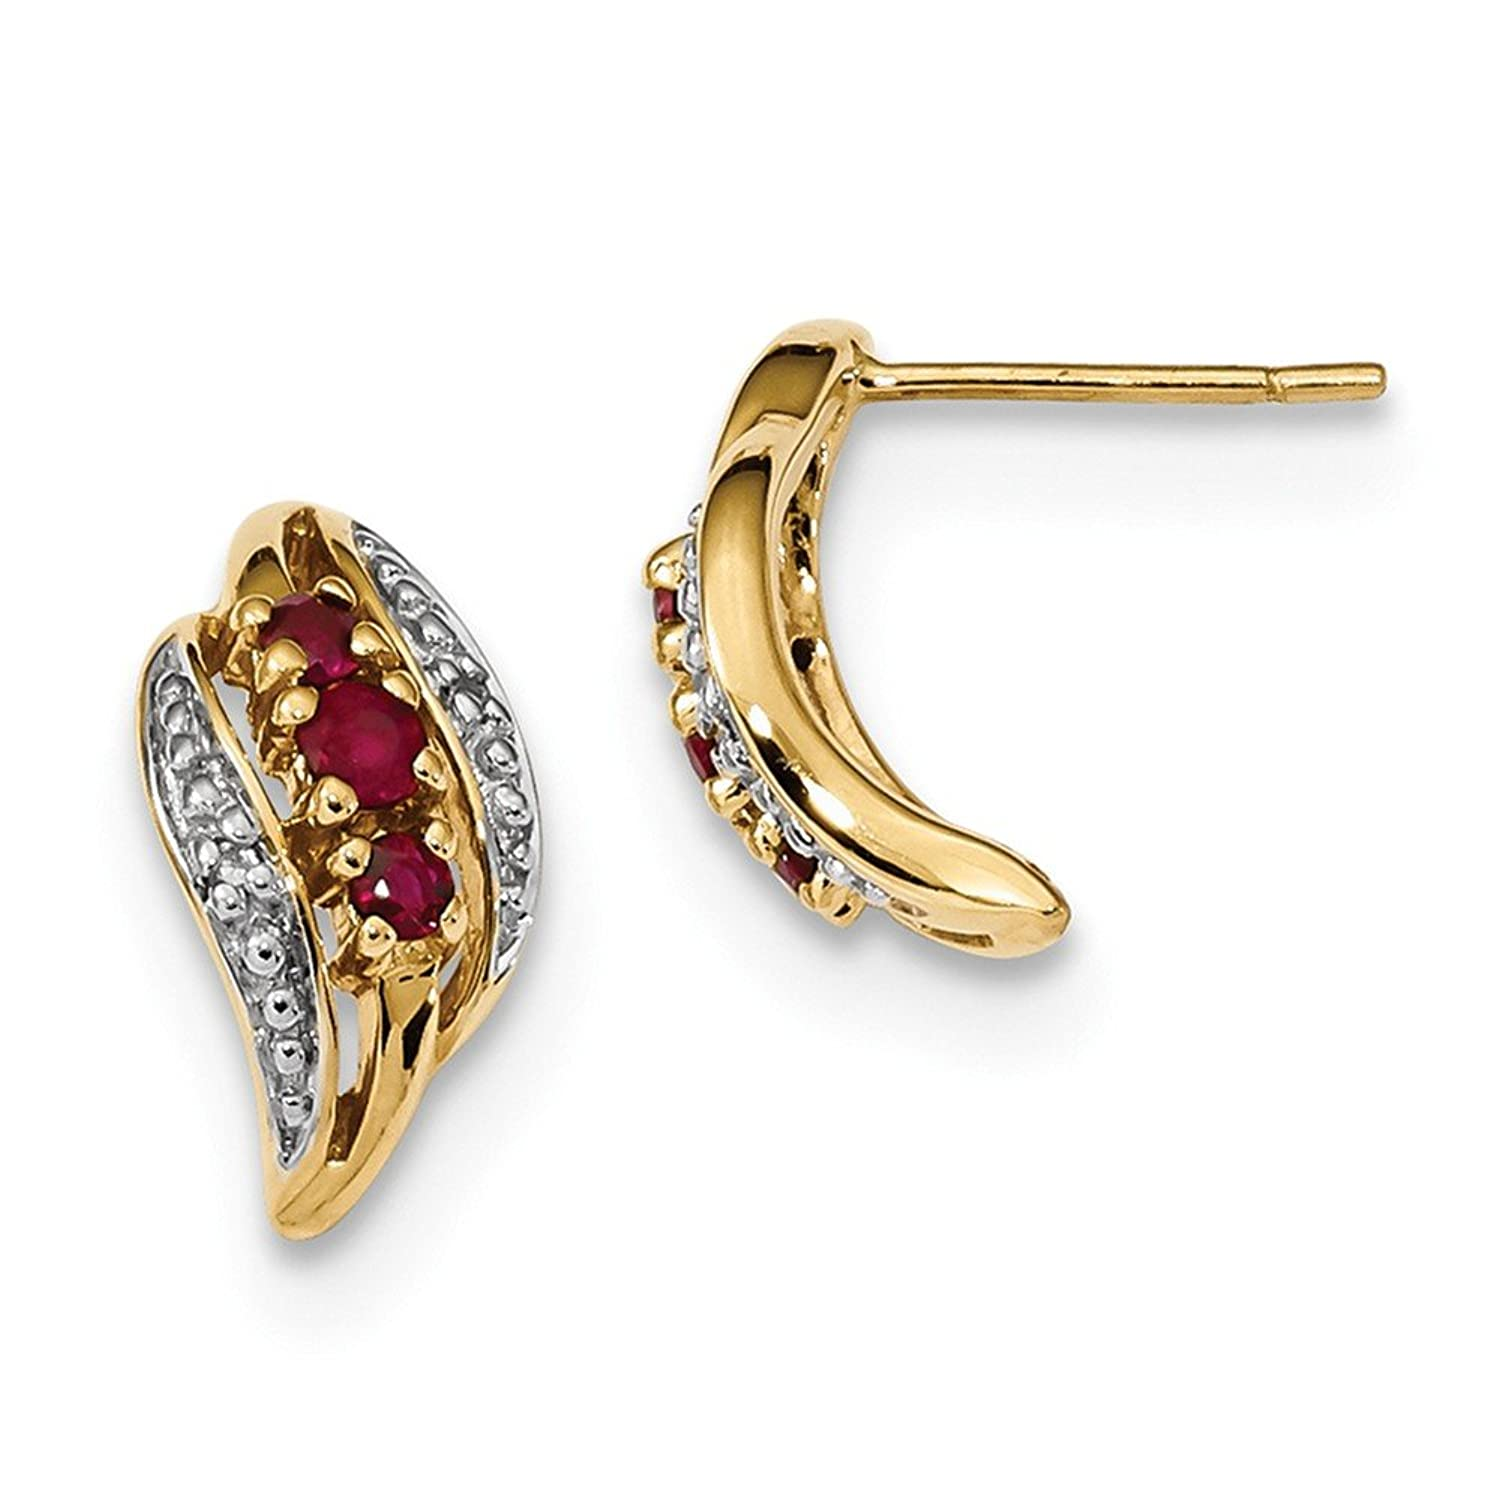 7 66mm 14ct Gold With Siam Ruby and Diamond Polished Post Earrings